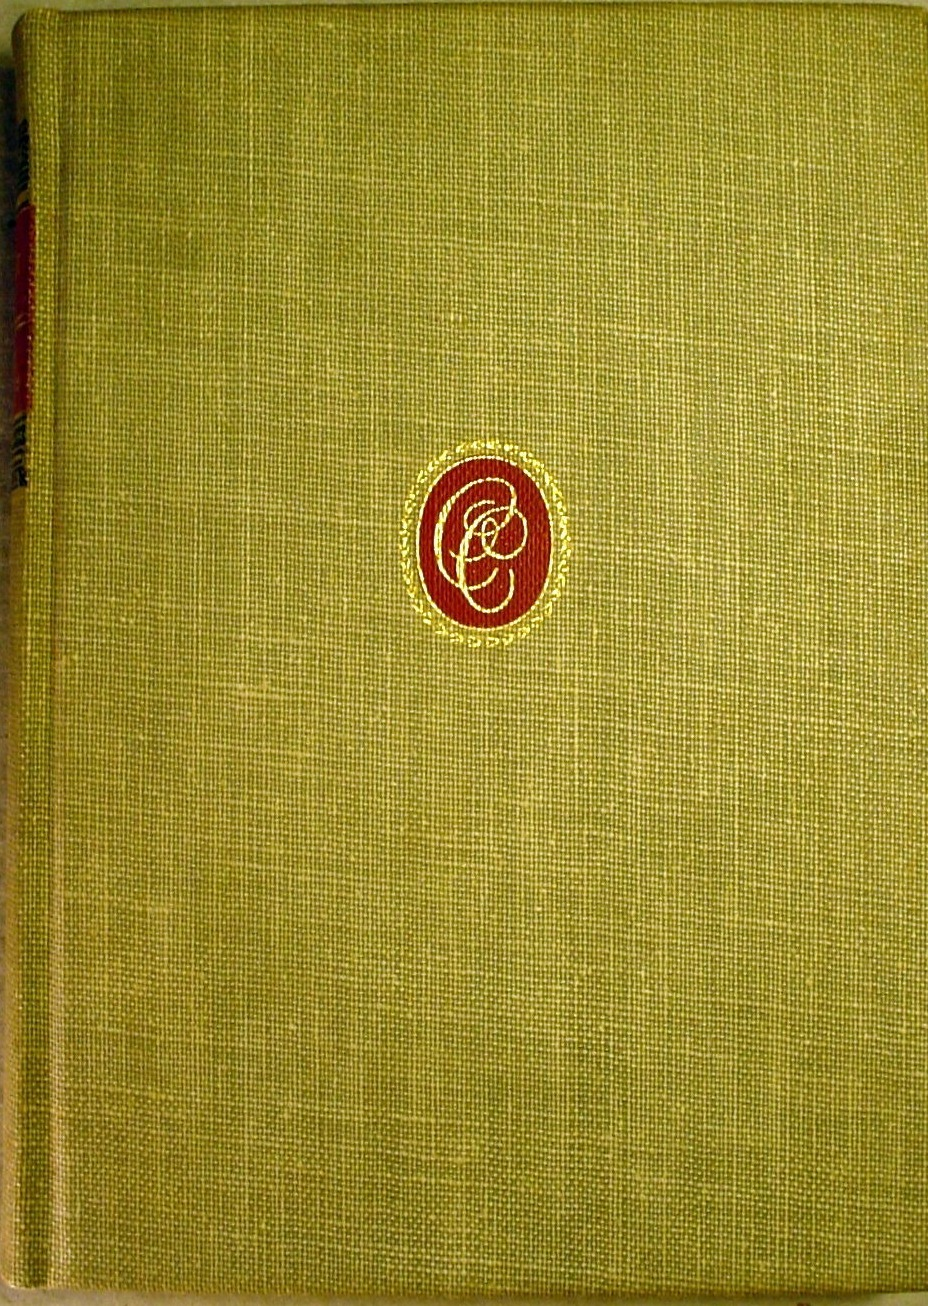 The Rubaiyat of Omar Khayyam  The Five Authorized Versions